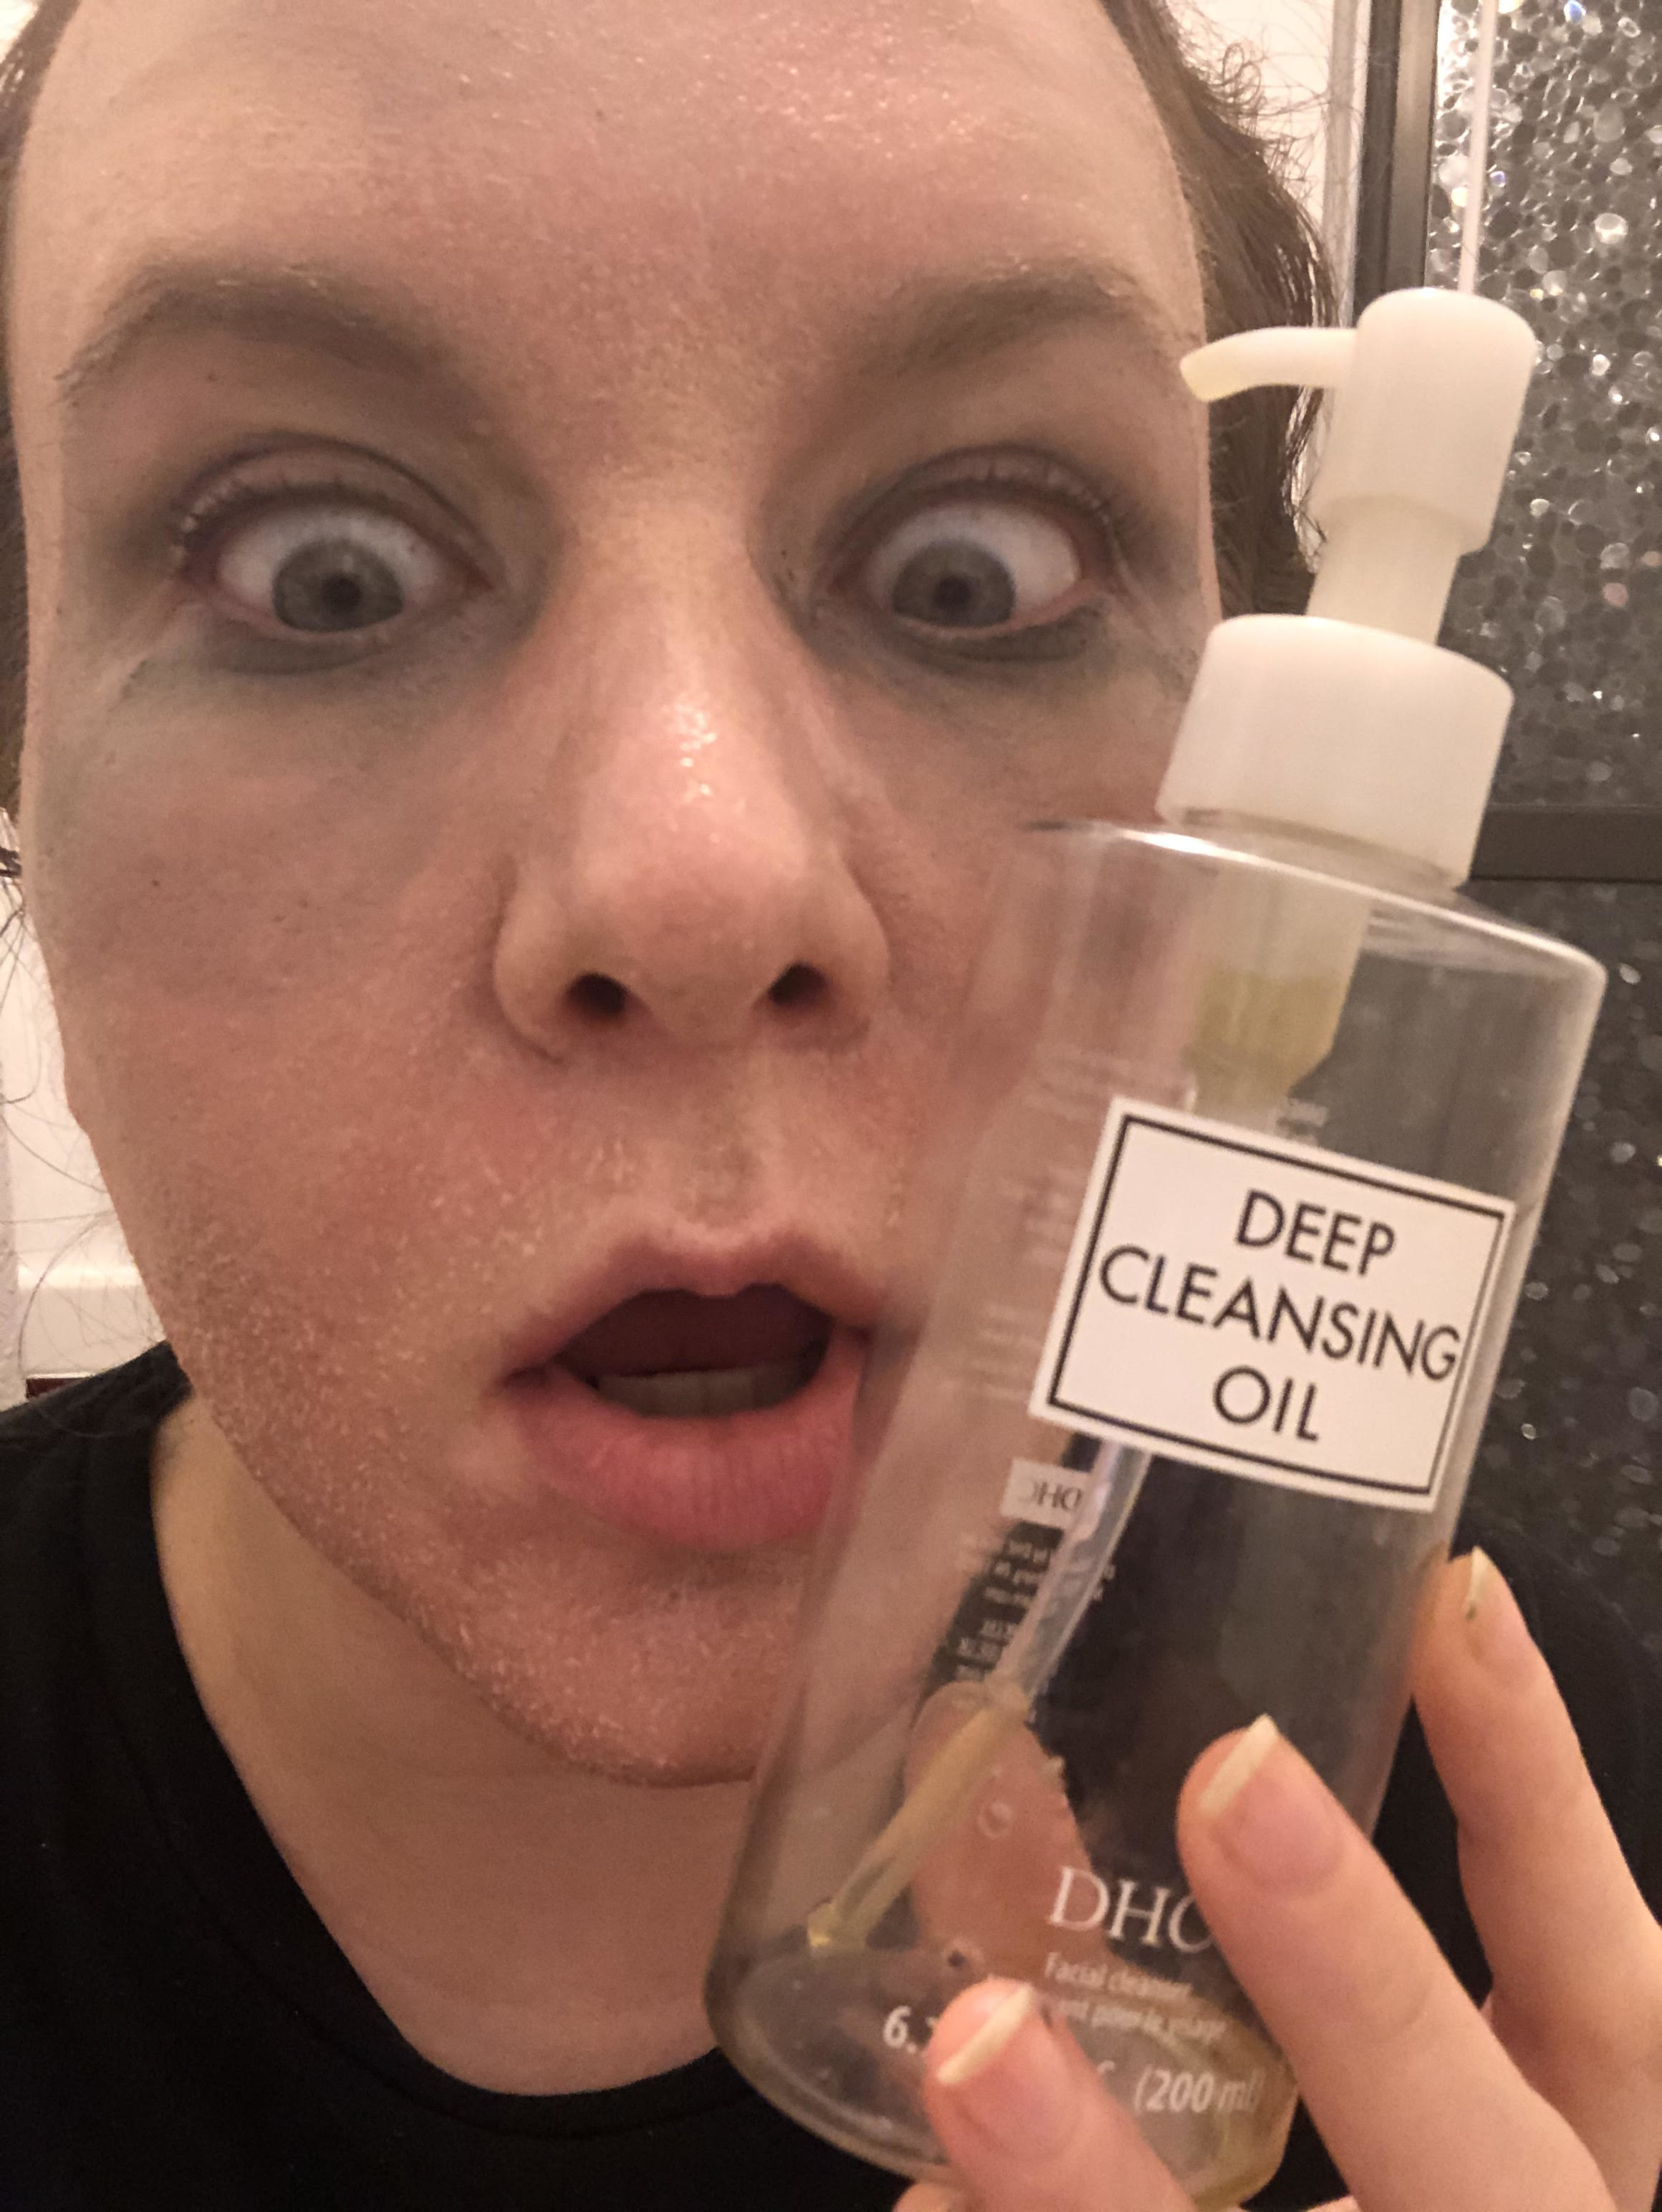 writer with foundation and mascara dissolving on face holding a bottle of the cleanser